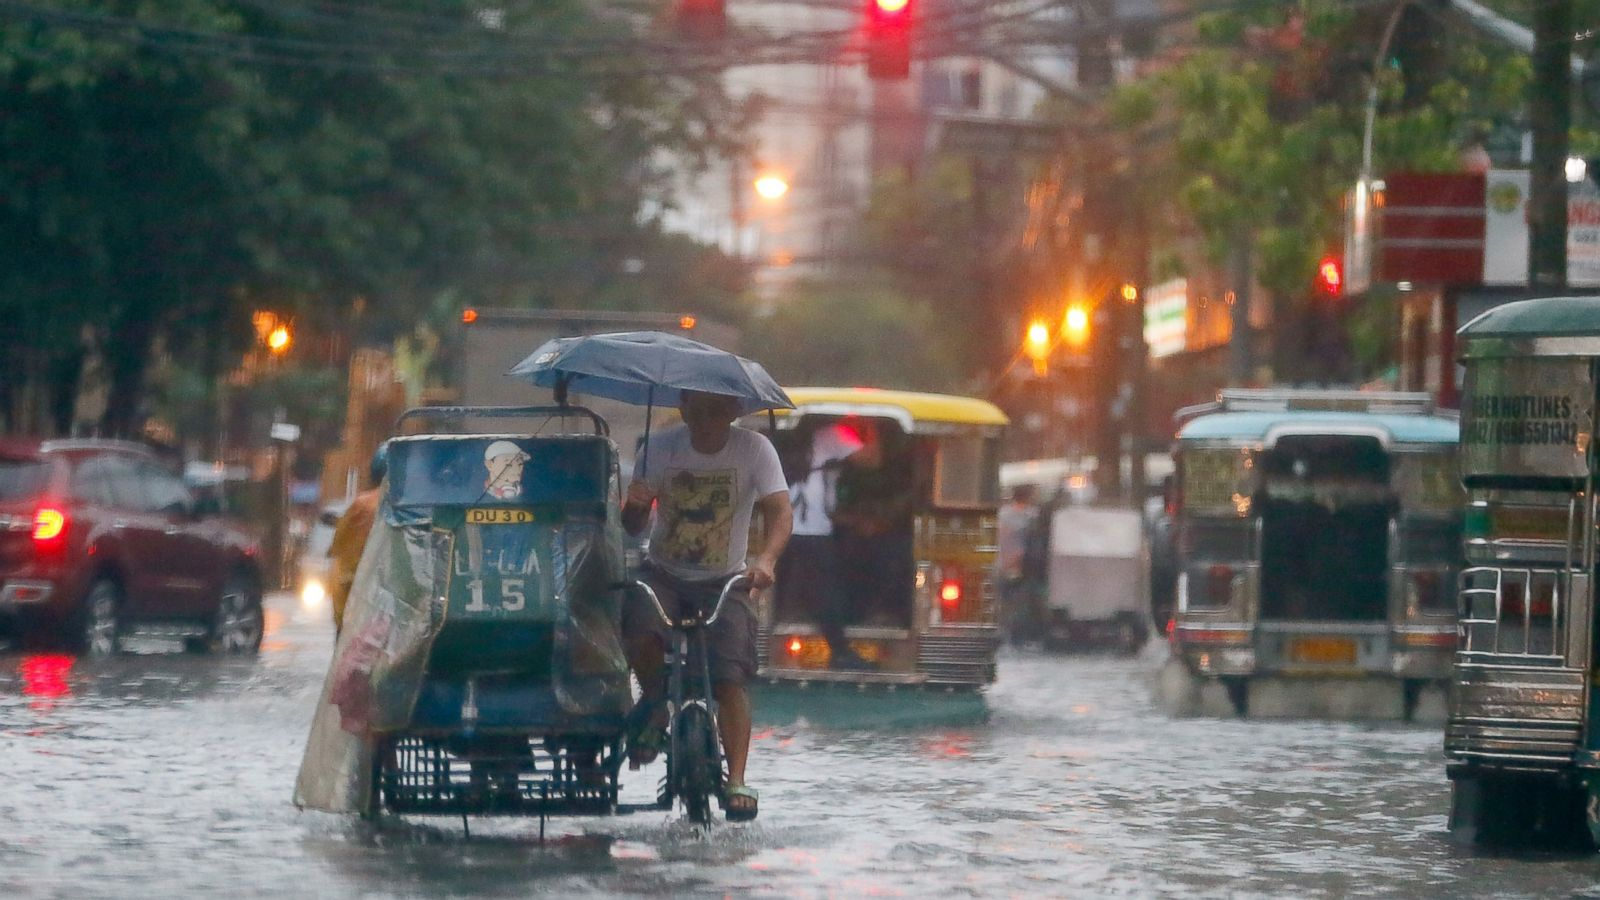 In this Aug. 26, 2016 file photo, commuters and motorists go on their way as heavy monsoon rains inundate low-lying areas in Manila, Philippines. Typhoons that slam into land in the northwestern Pacific _ especially the biggest tropical cyclones of the bunch _ have gotten considerably stronger since the 1970s, a new study concludes. (AP Photo/Bullit Marquez, File)